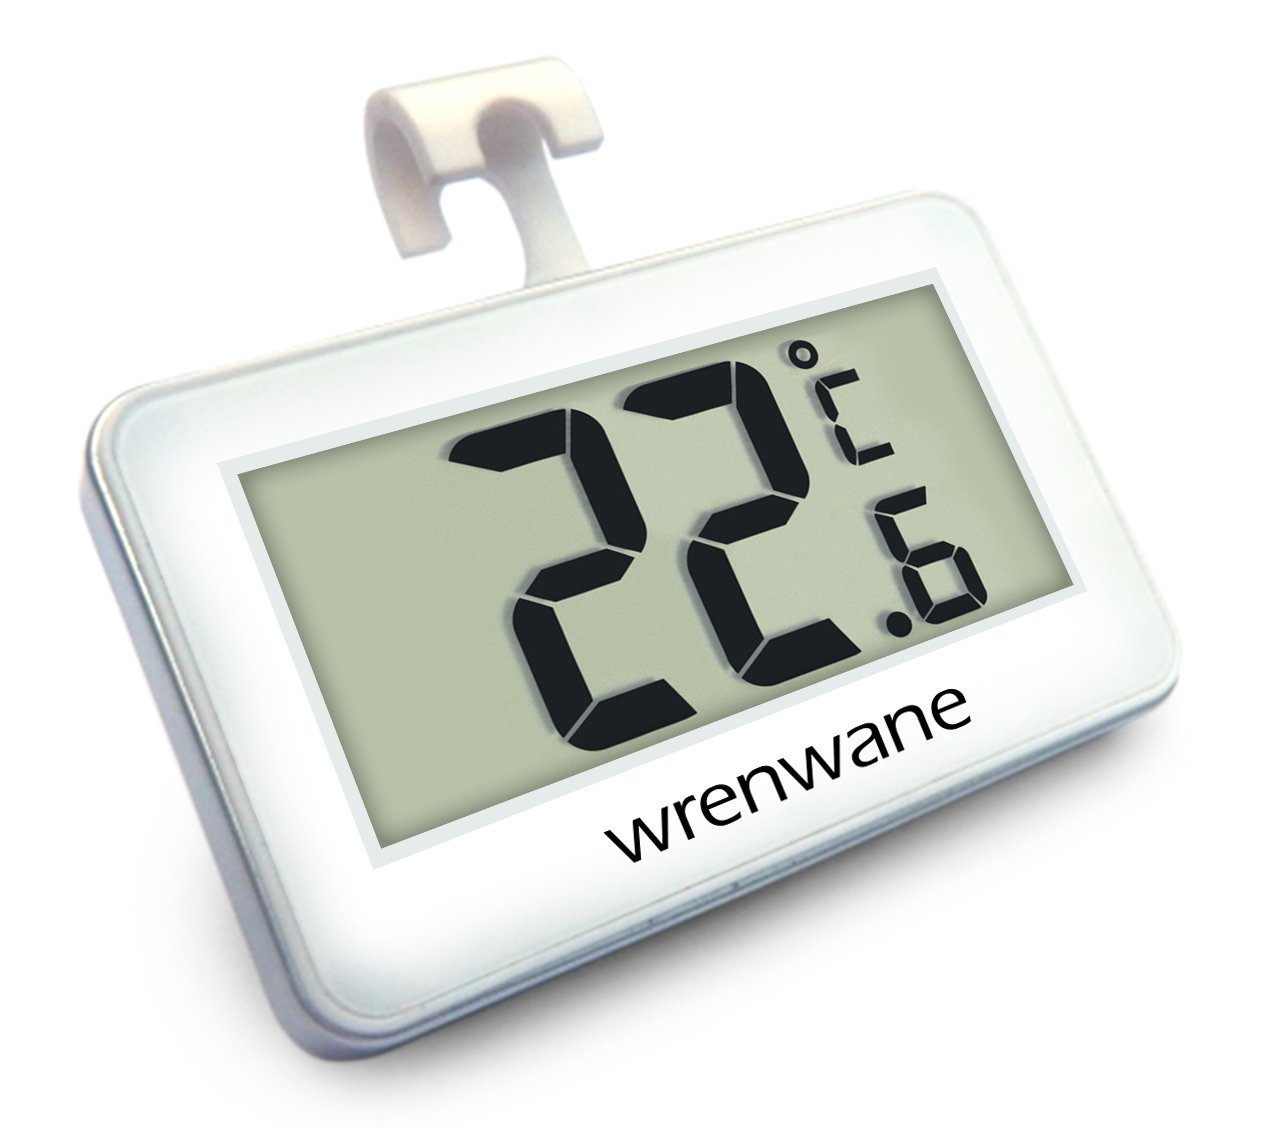 Wrenwane Digital Refrigerator Thermometer Review